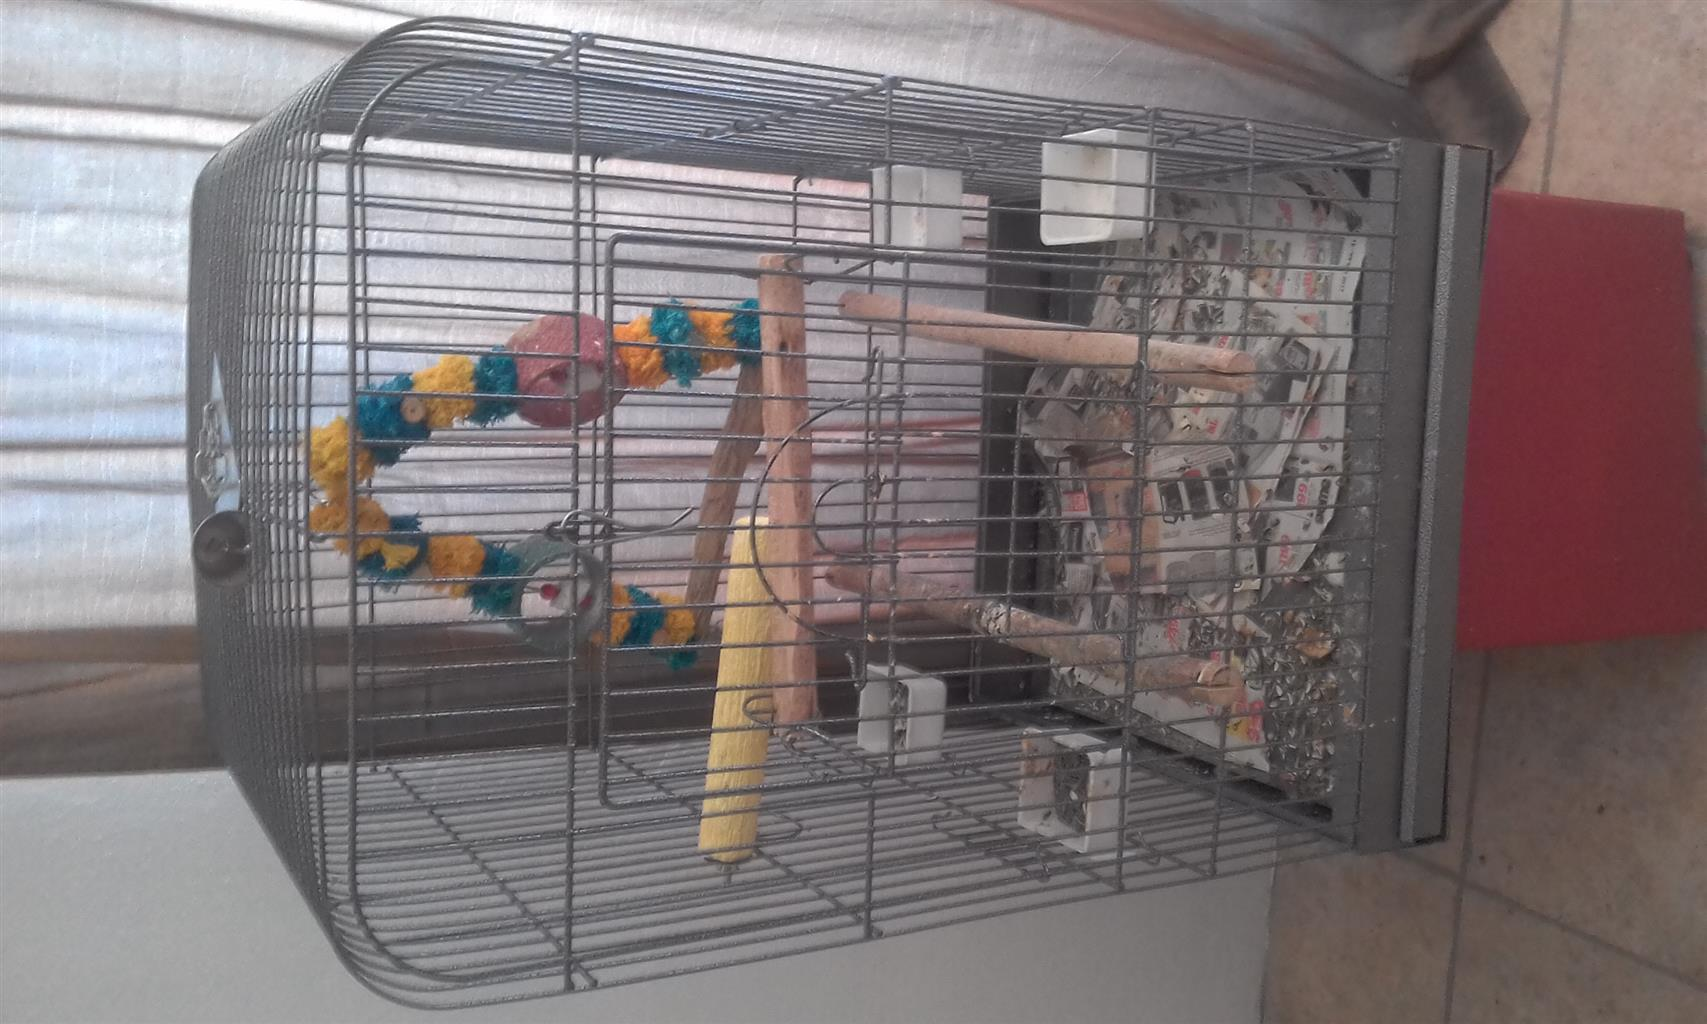 Fully equipped parrot cage for sale